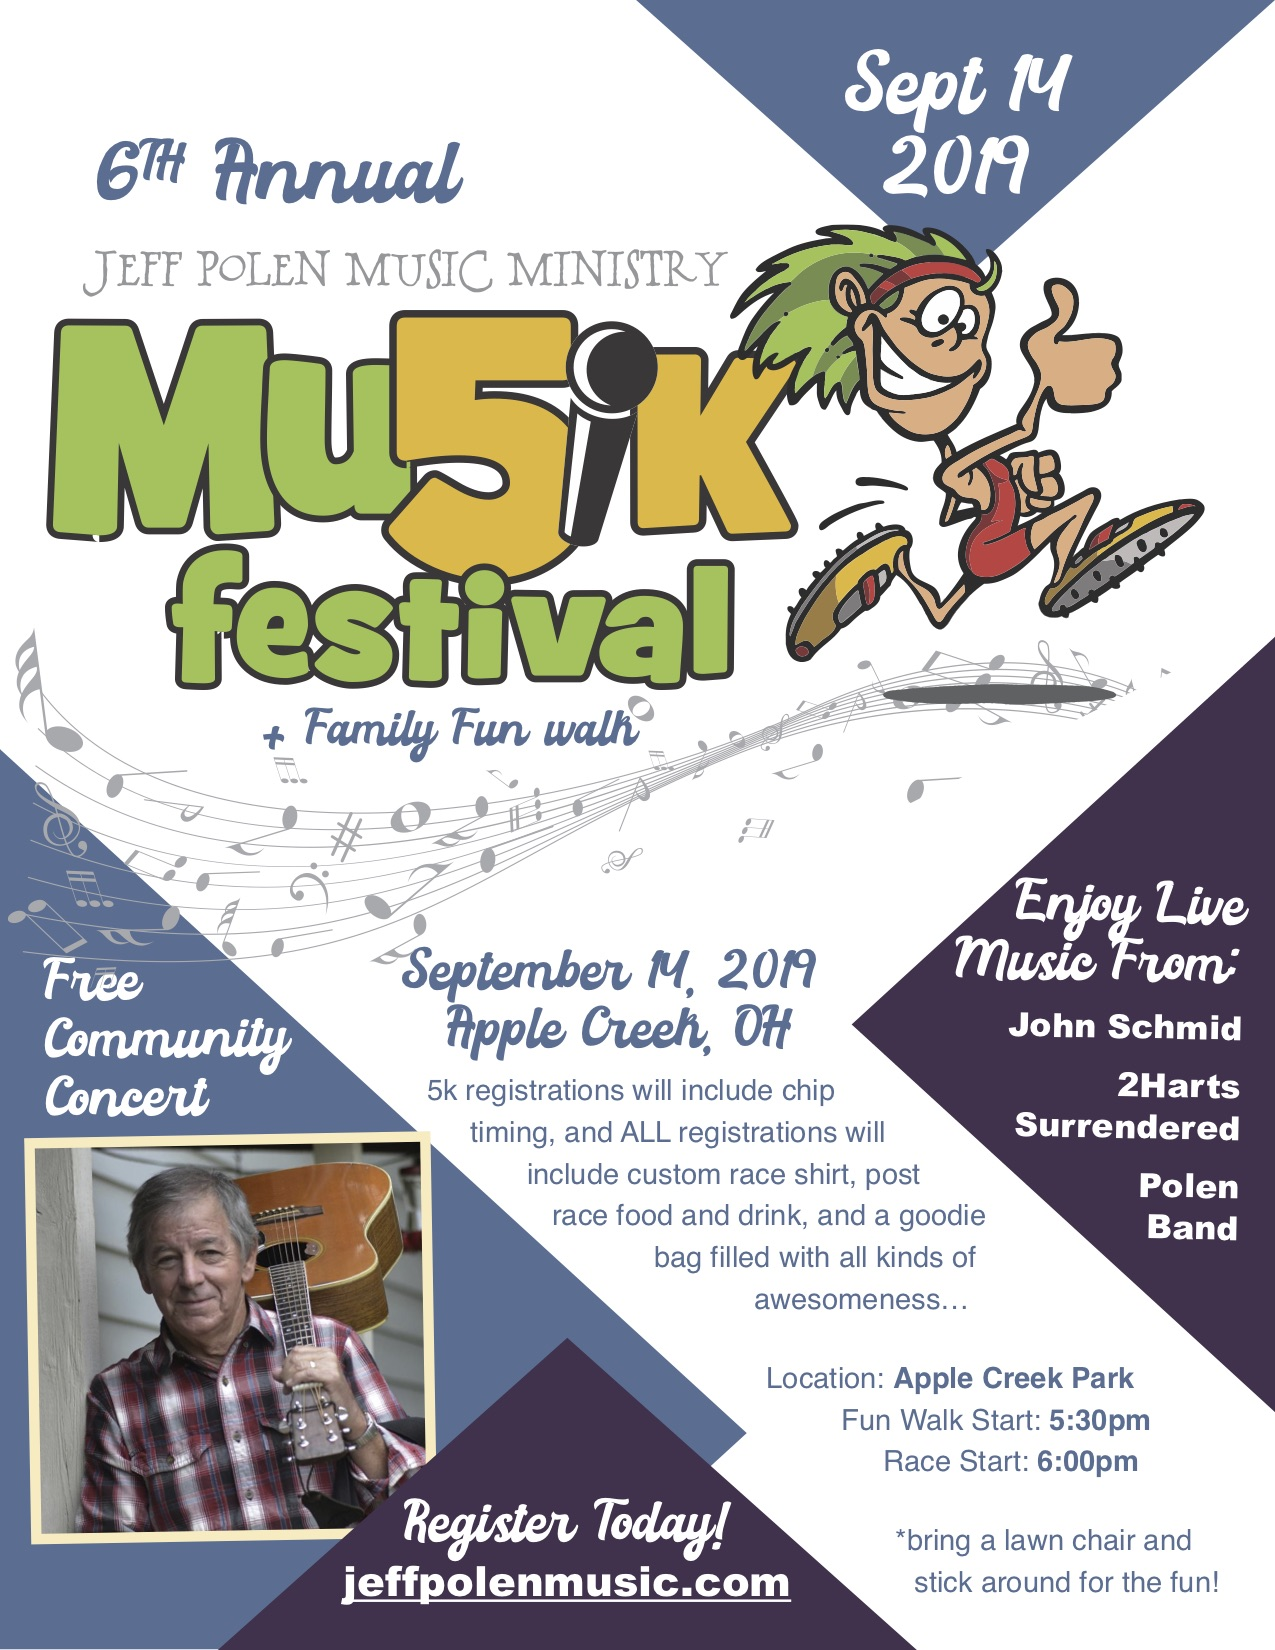 6th Annual JPM 5k & Musik Festival (+ Family Fun Walk)